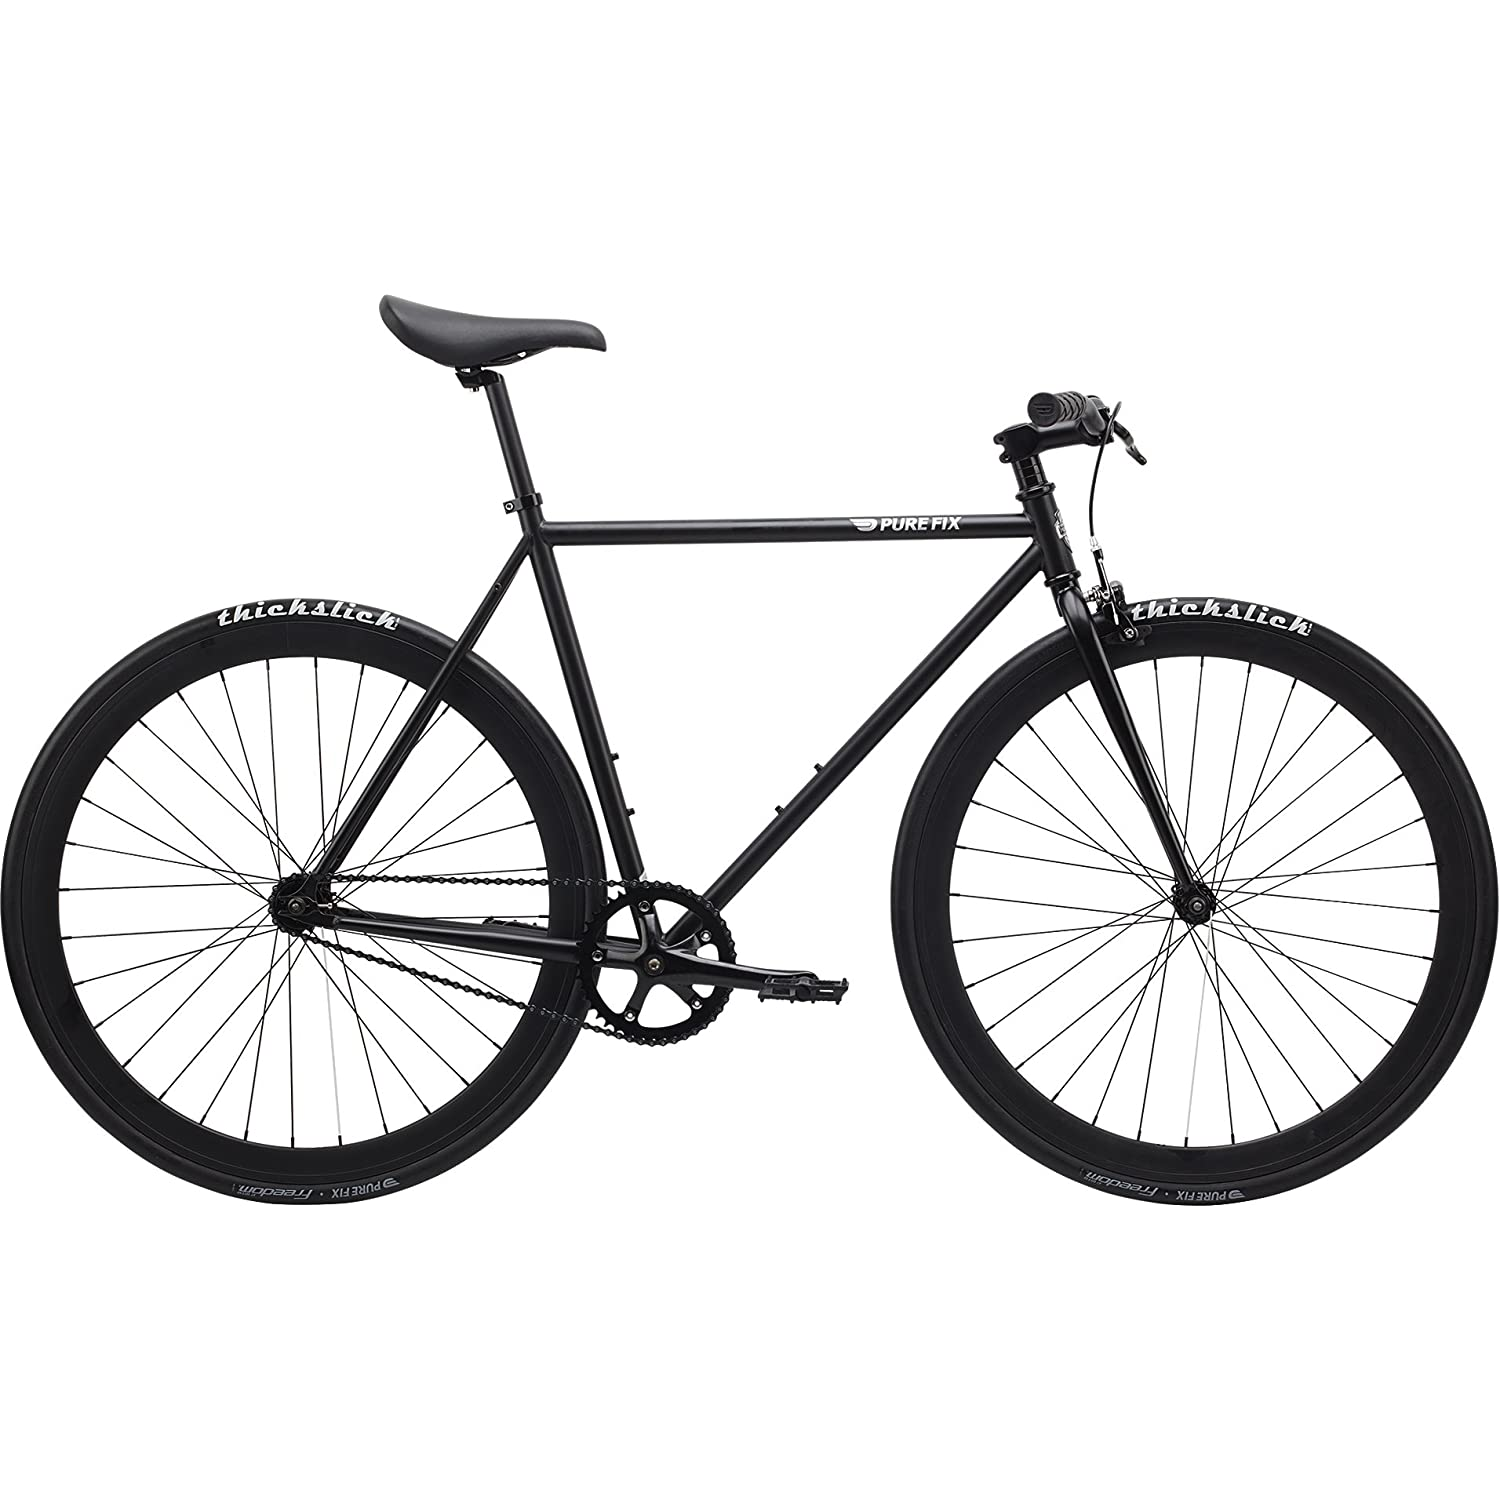 Pure-Fix-Original-Fixed-Gear-Single-Speed-Fixie-Bike-Review-300x200